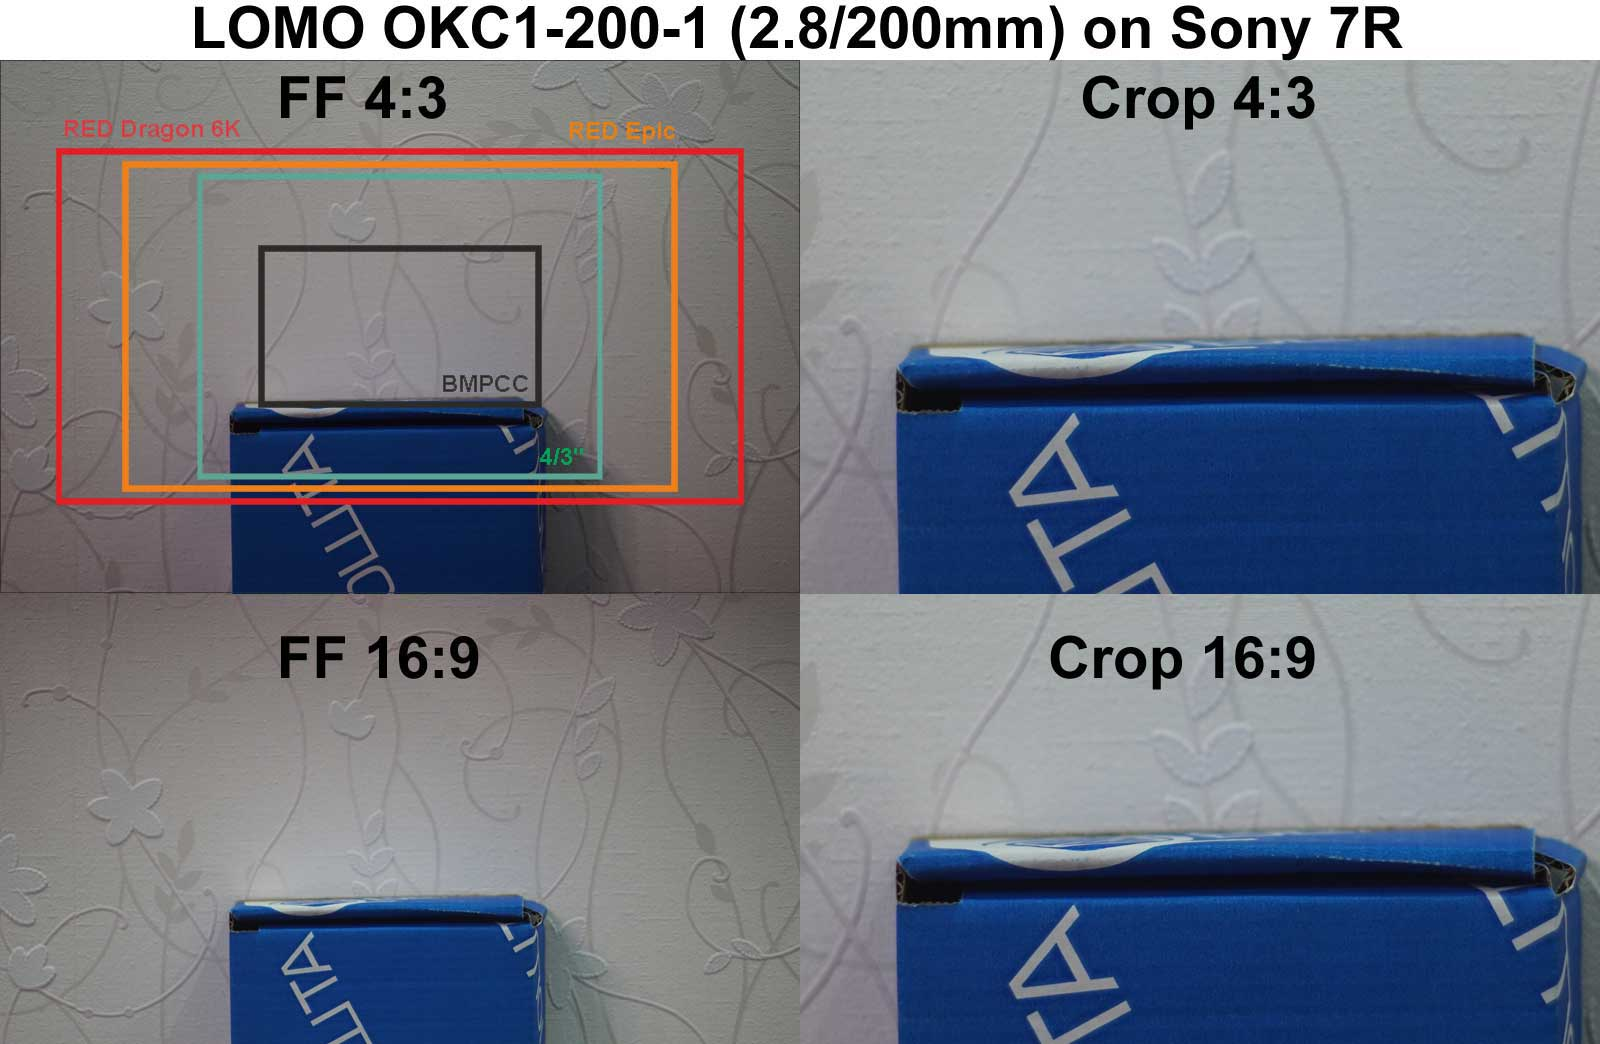 Coverage of LOMO OKC1-200-1 lens on Sony 7R camera